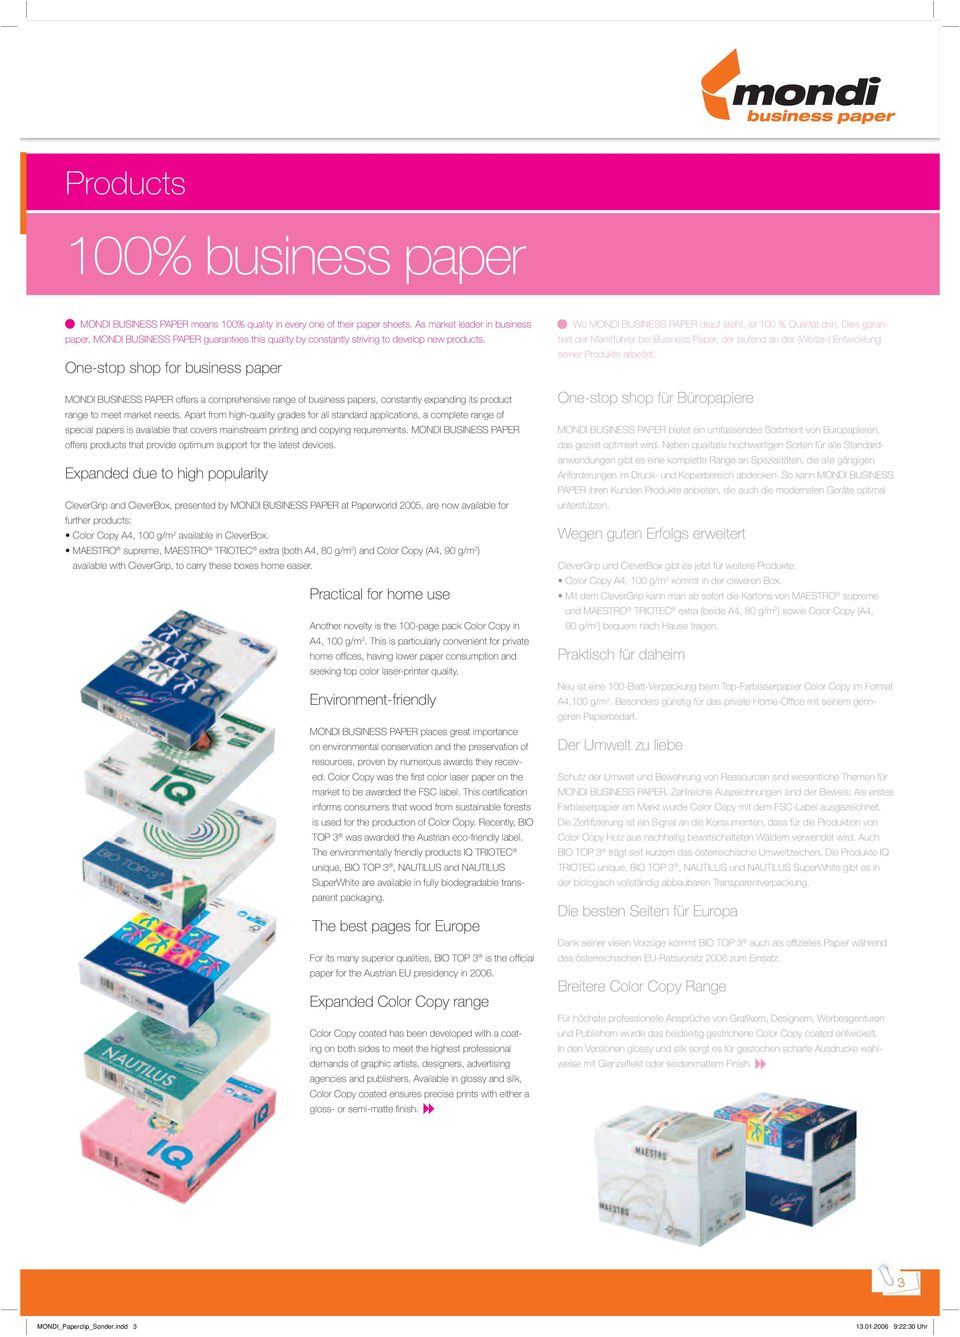 One-stop shop for business paper MONDI BUSINESS PAPER offers a comprehensive range of business papers, constantly expanding its product range to meet market needs.